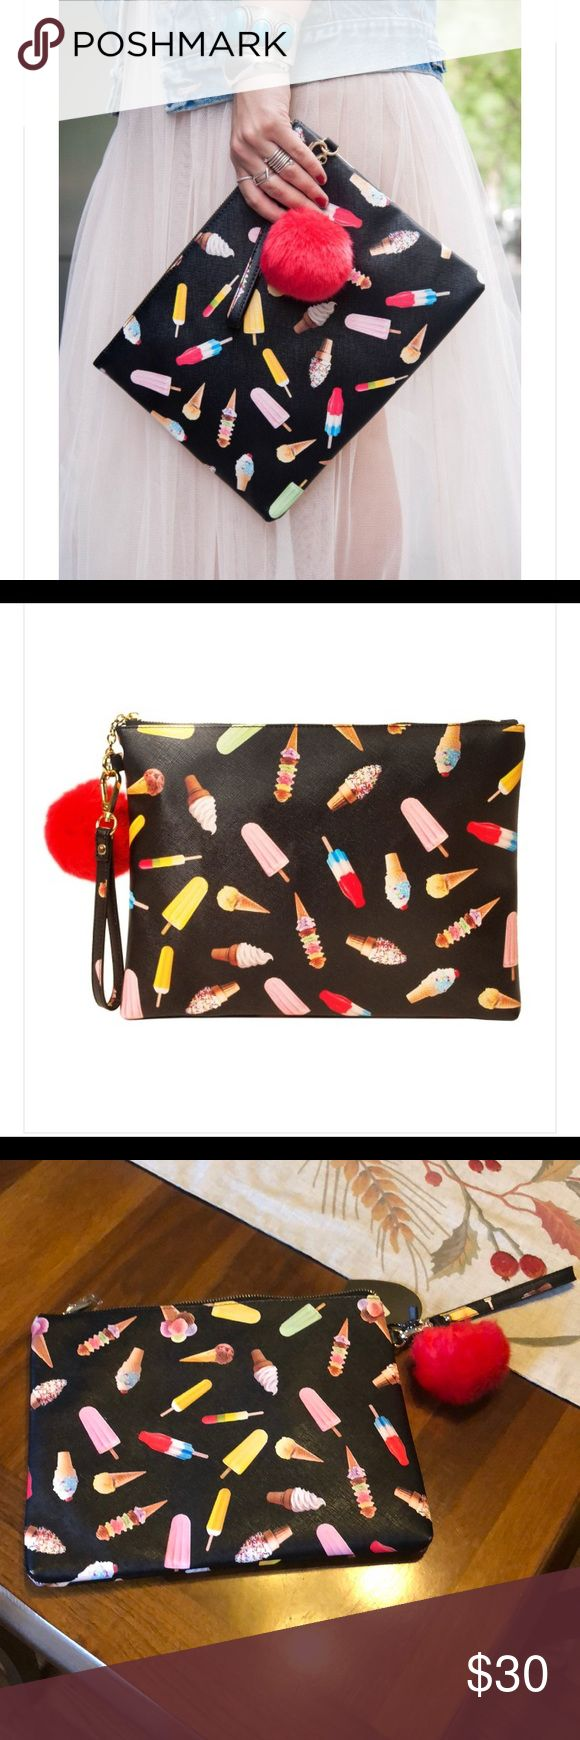 😘New Beautiful Ice Cream Clutch bag!! This bag is gorgeous!!! It's perfect for any occasion &  it's new dress up or down!!! Bags Clutches & Wristlets